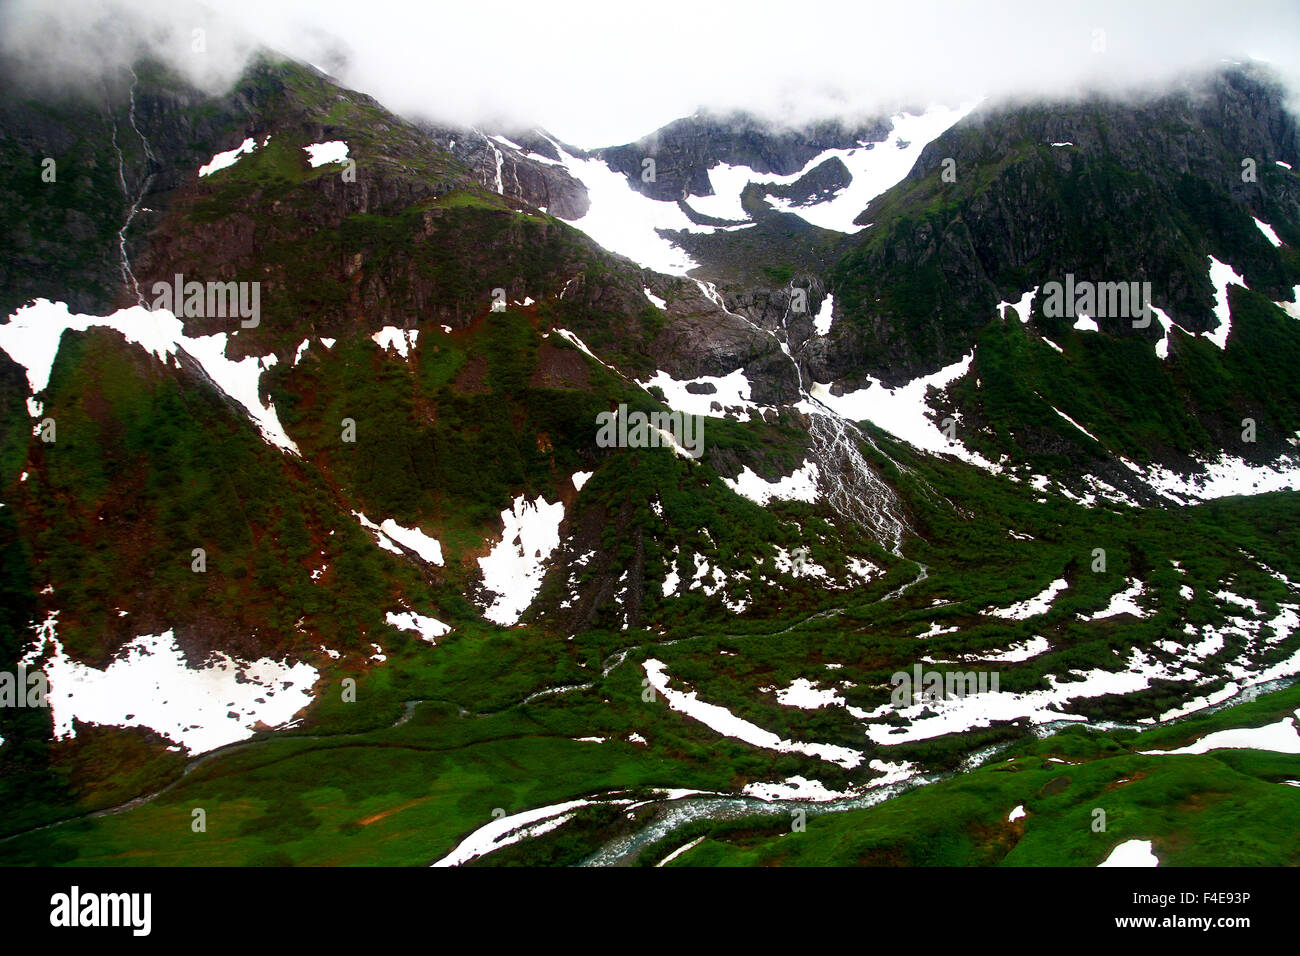 Aerial view of the Tongass National Forest in Juneau, Alaska on the way to the Mendenhall Glacier - Stock Image